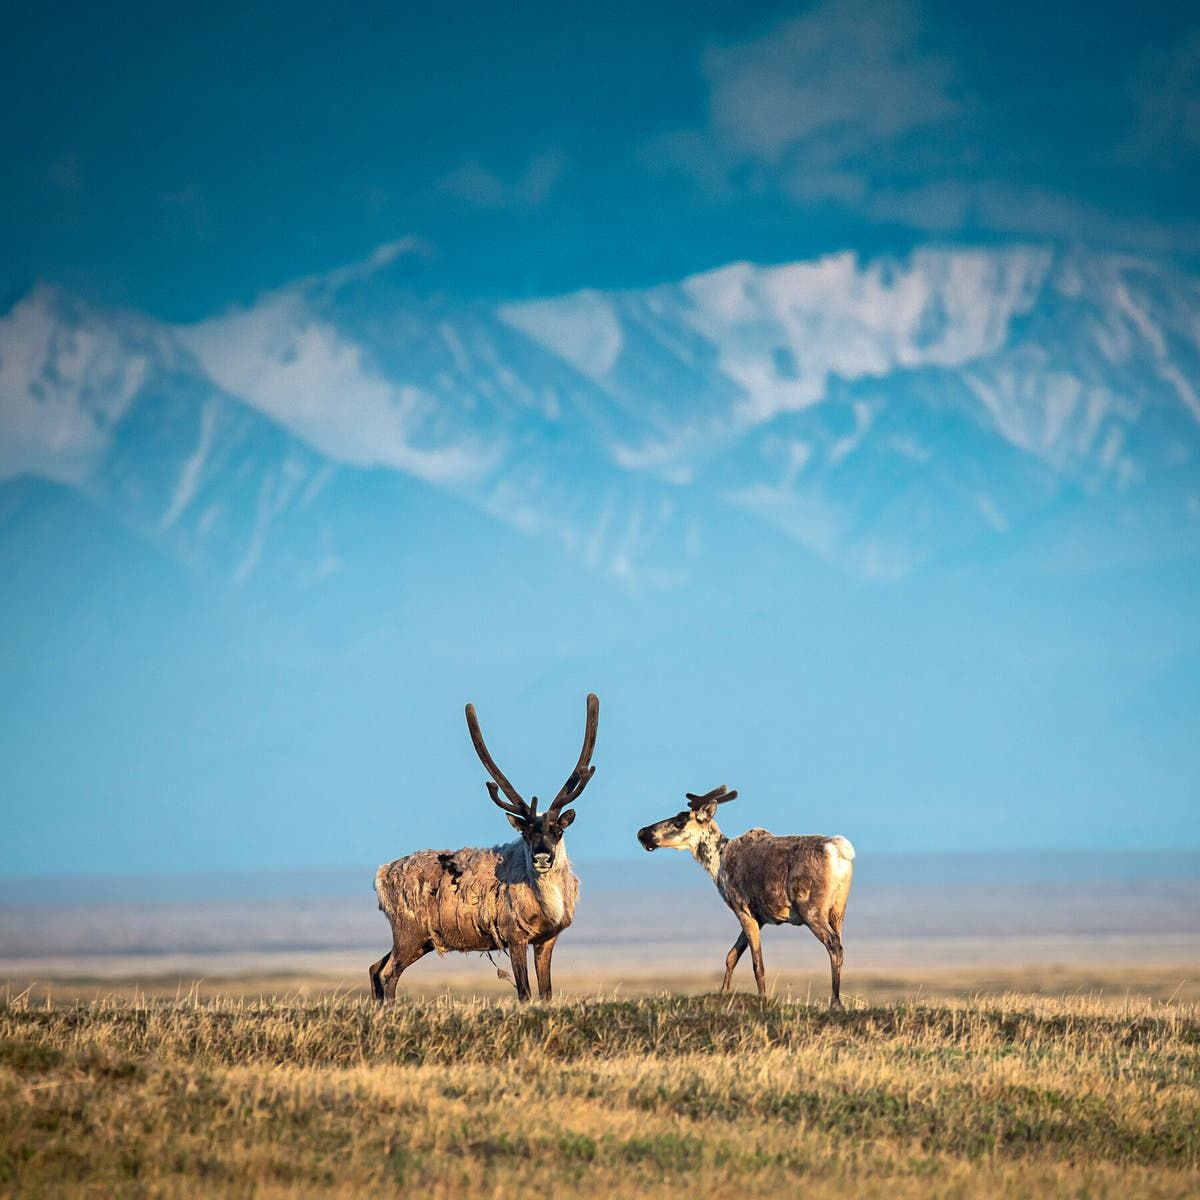 Trump Administration Finalizes Plan To Open Oil Drilling In Alaska S Arctic Refuge The New York Times In 2020 National Wildlife Refuge Wildlife Oil And Gas